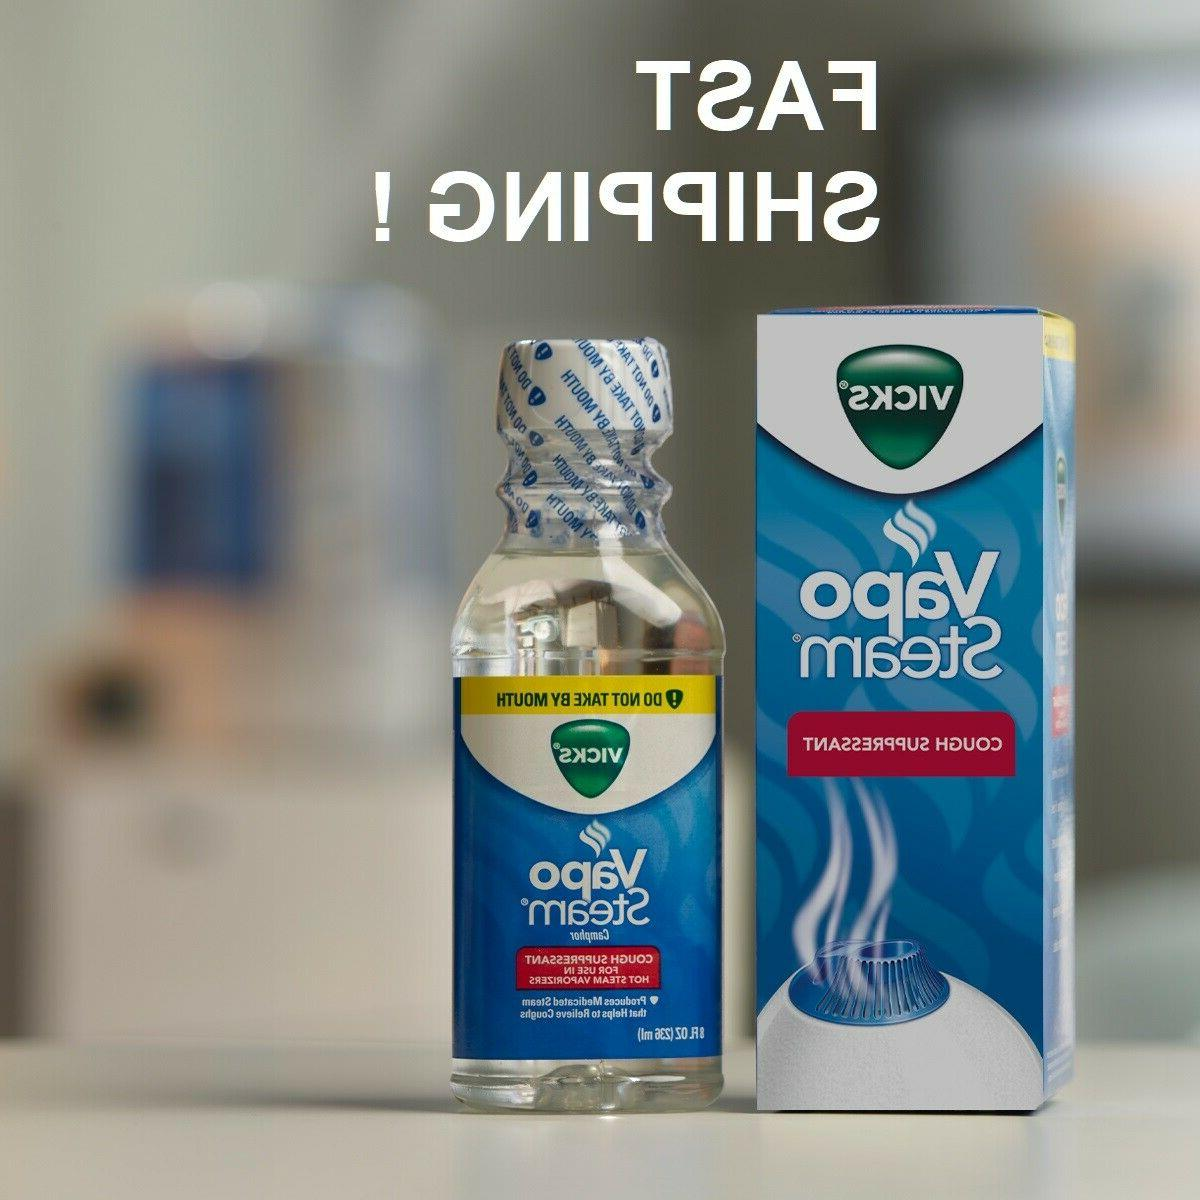 vaposteam medicated steam therapy helps relieve coughing